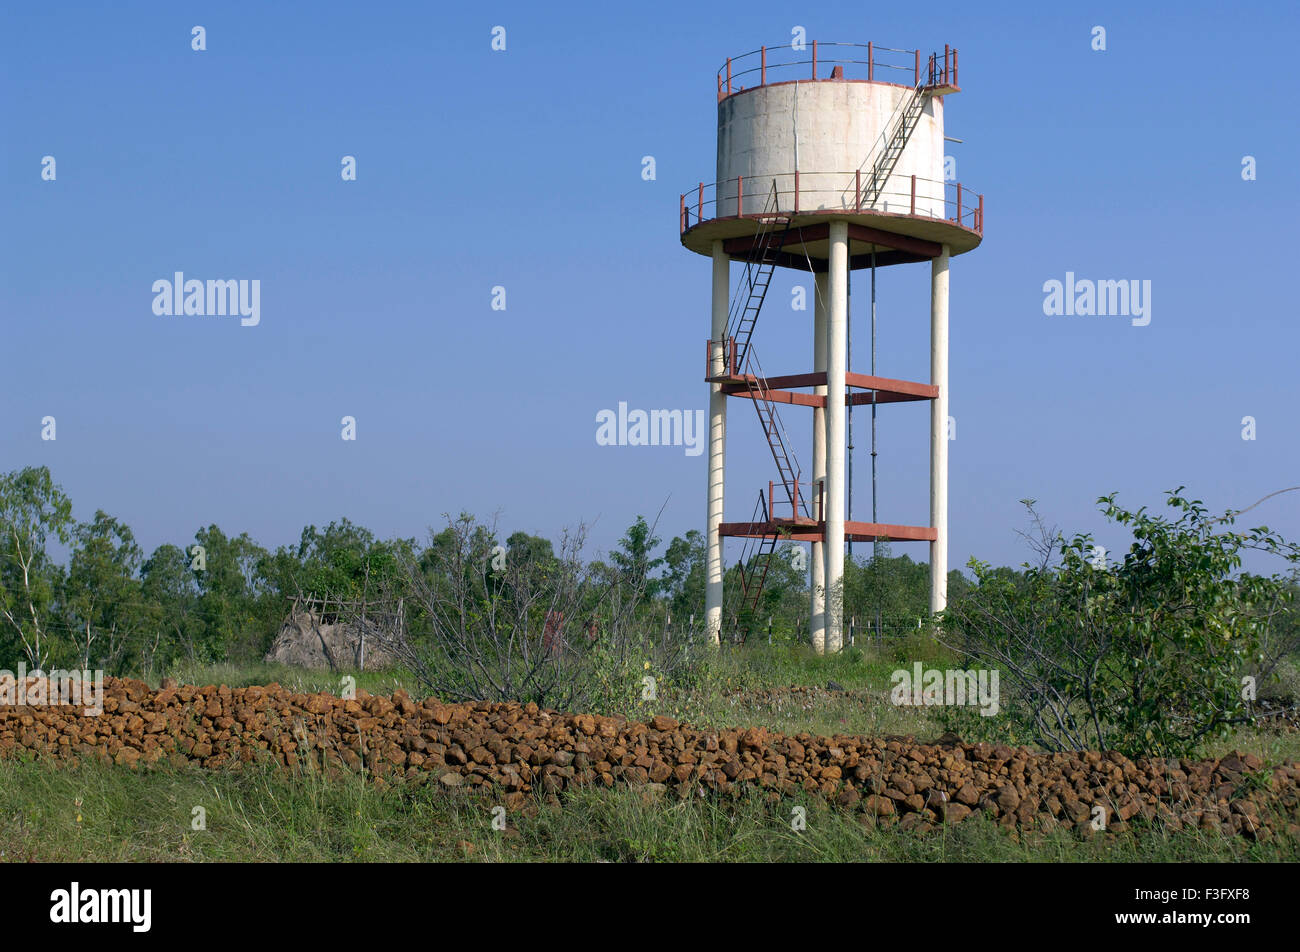 Swajaldhara overhead drinking water capacity 75000 liters at Ralegan Siddhi near Pune ; Maharashtra ; India - Stock Image